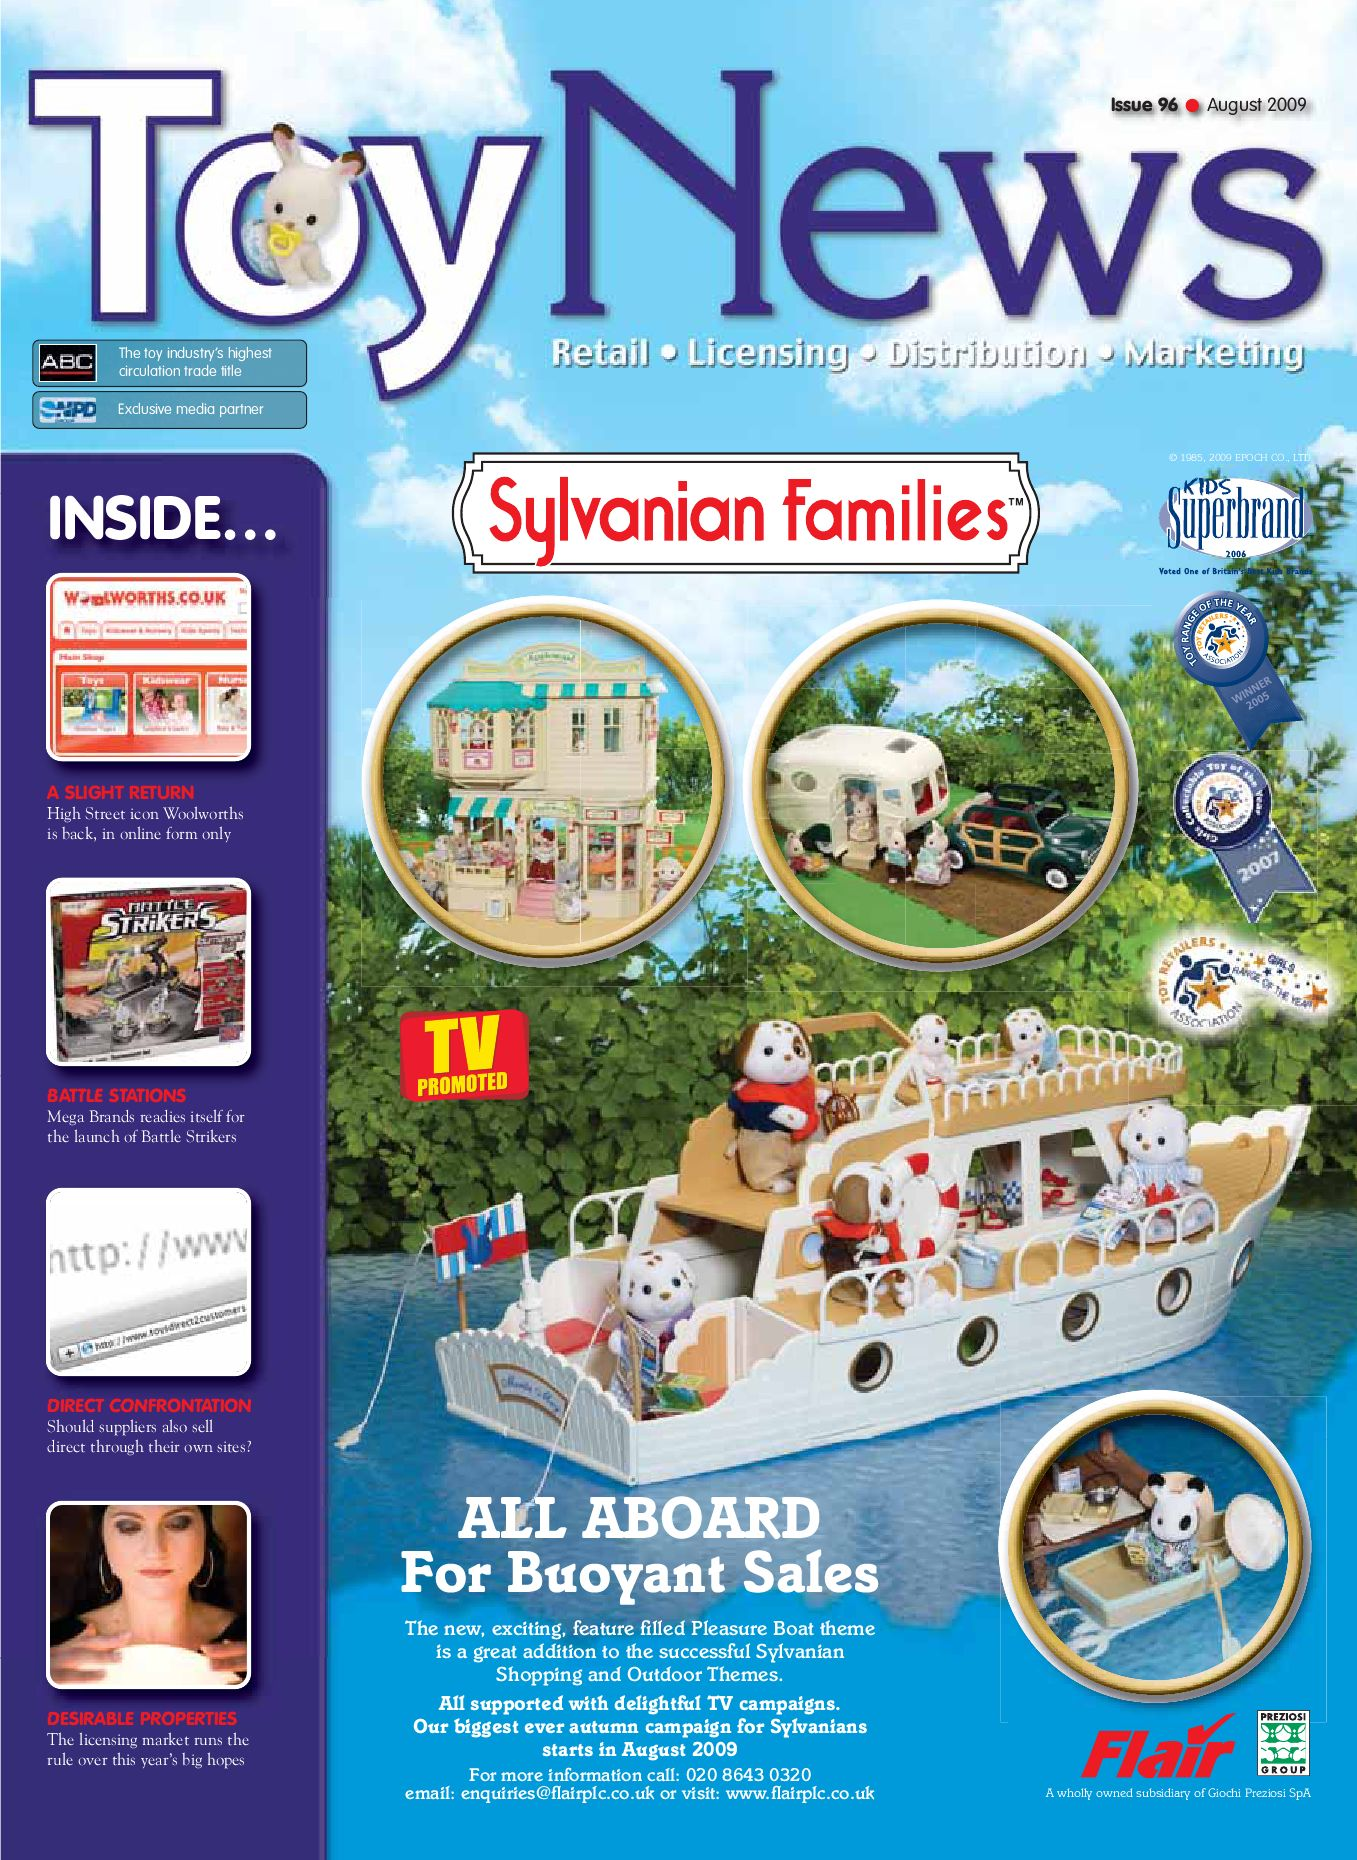 Toynews Issue 96 August 2009 By Intent Media Now Newbay Sylvanian Families Bott Ant 9 Europe Issuu